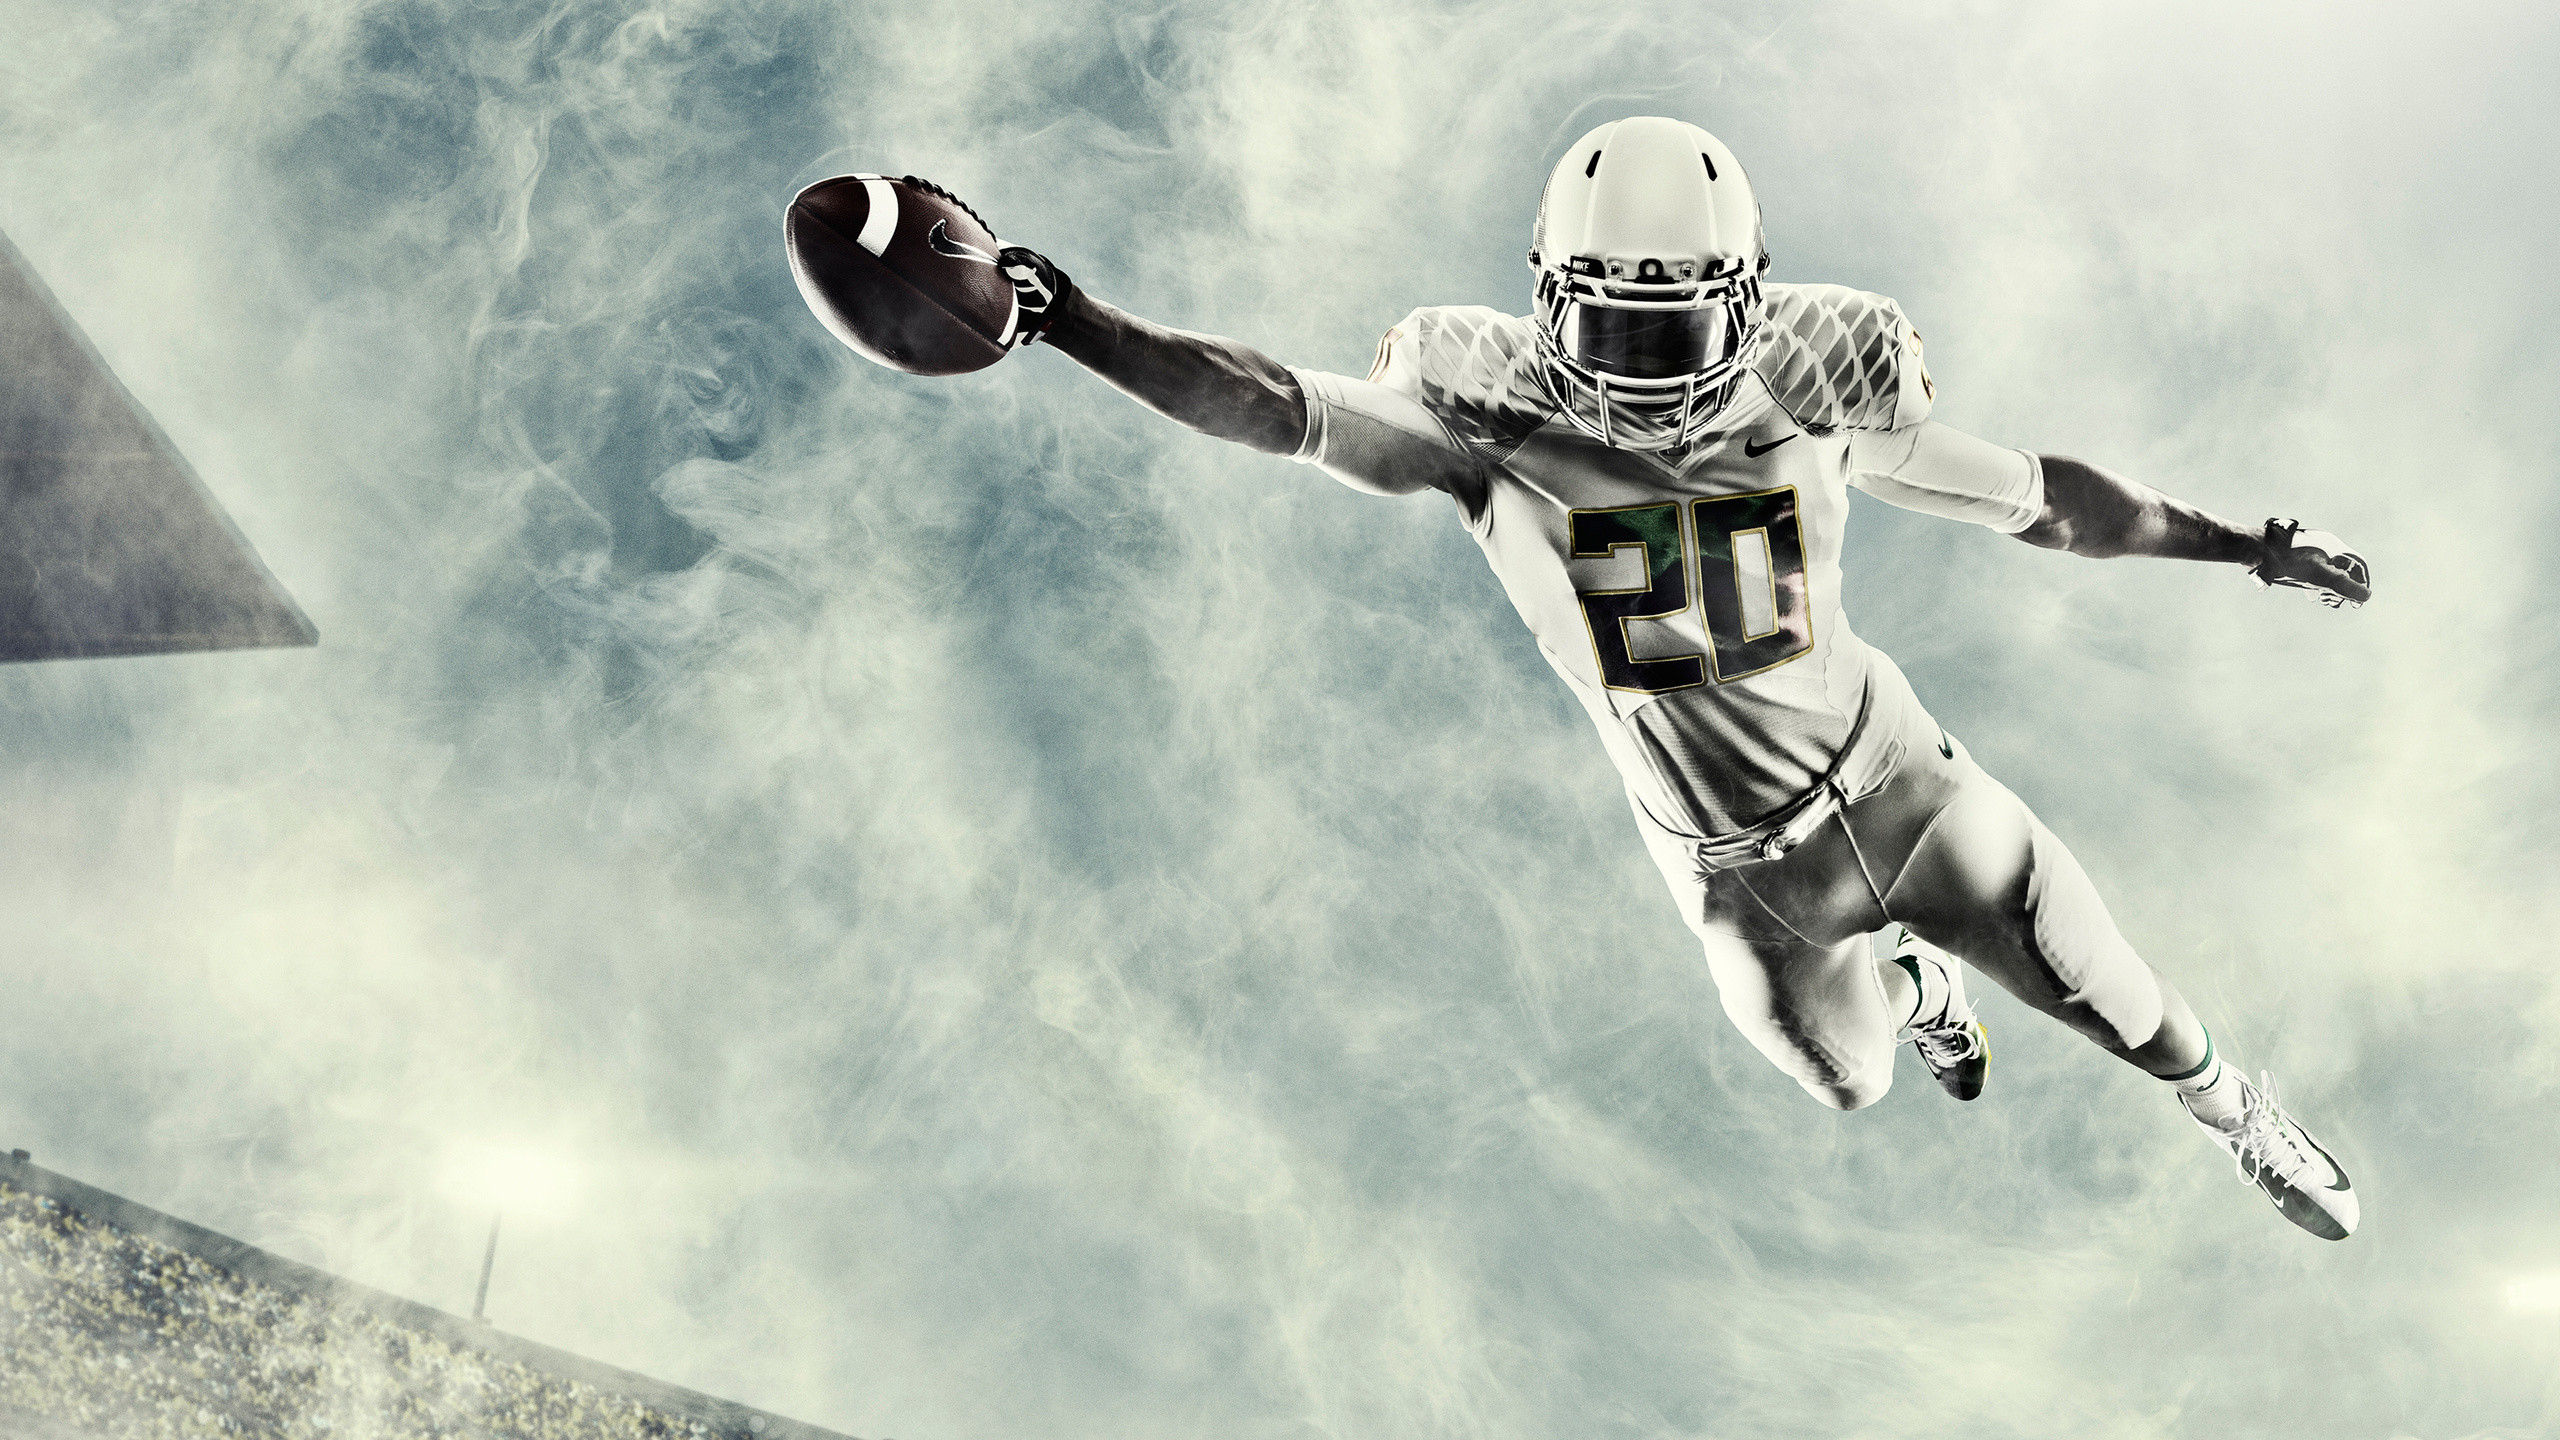 2560x1440  football, oregon ducks football, oregon ducks football .